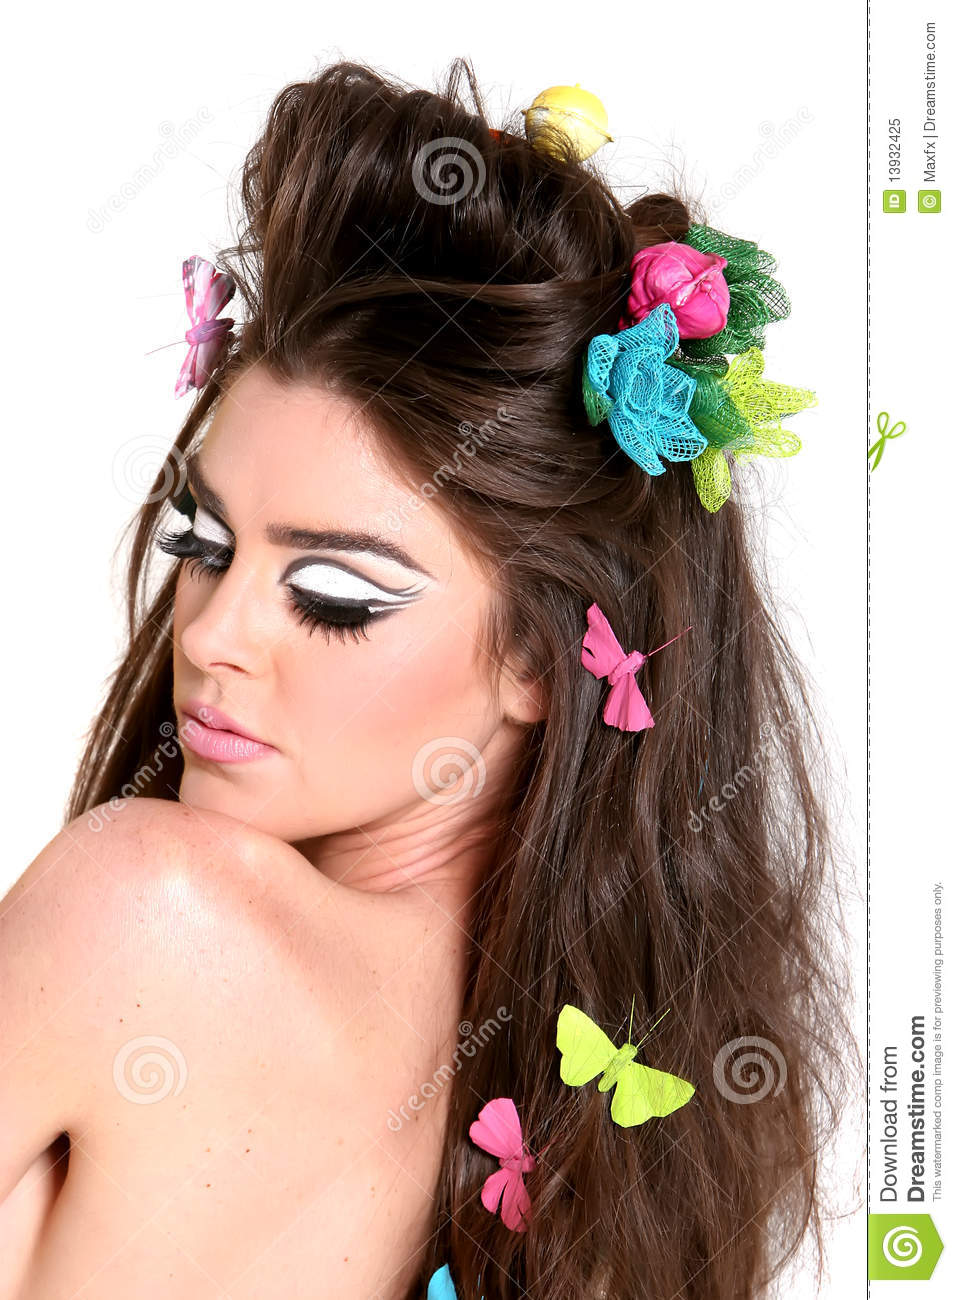 Young Woman With High Fashion Makeup And Hairstyle Stock Image Image 13932425